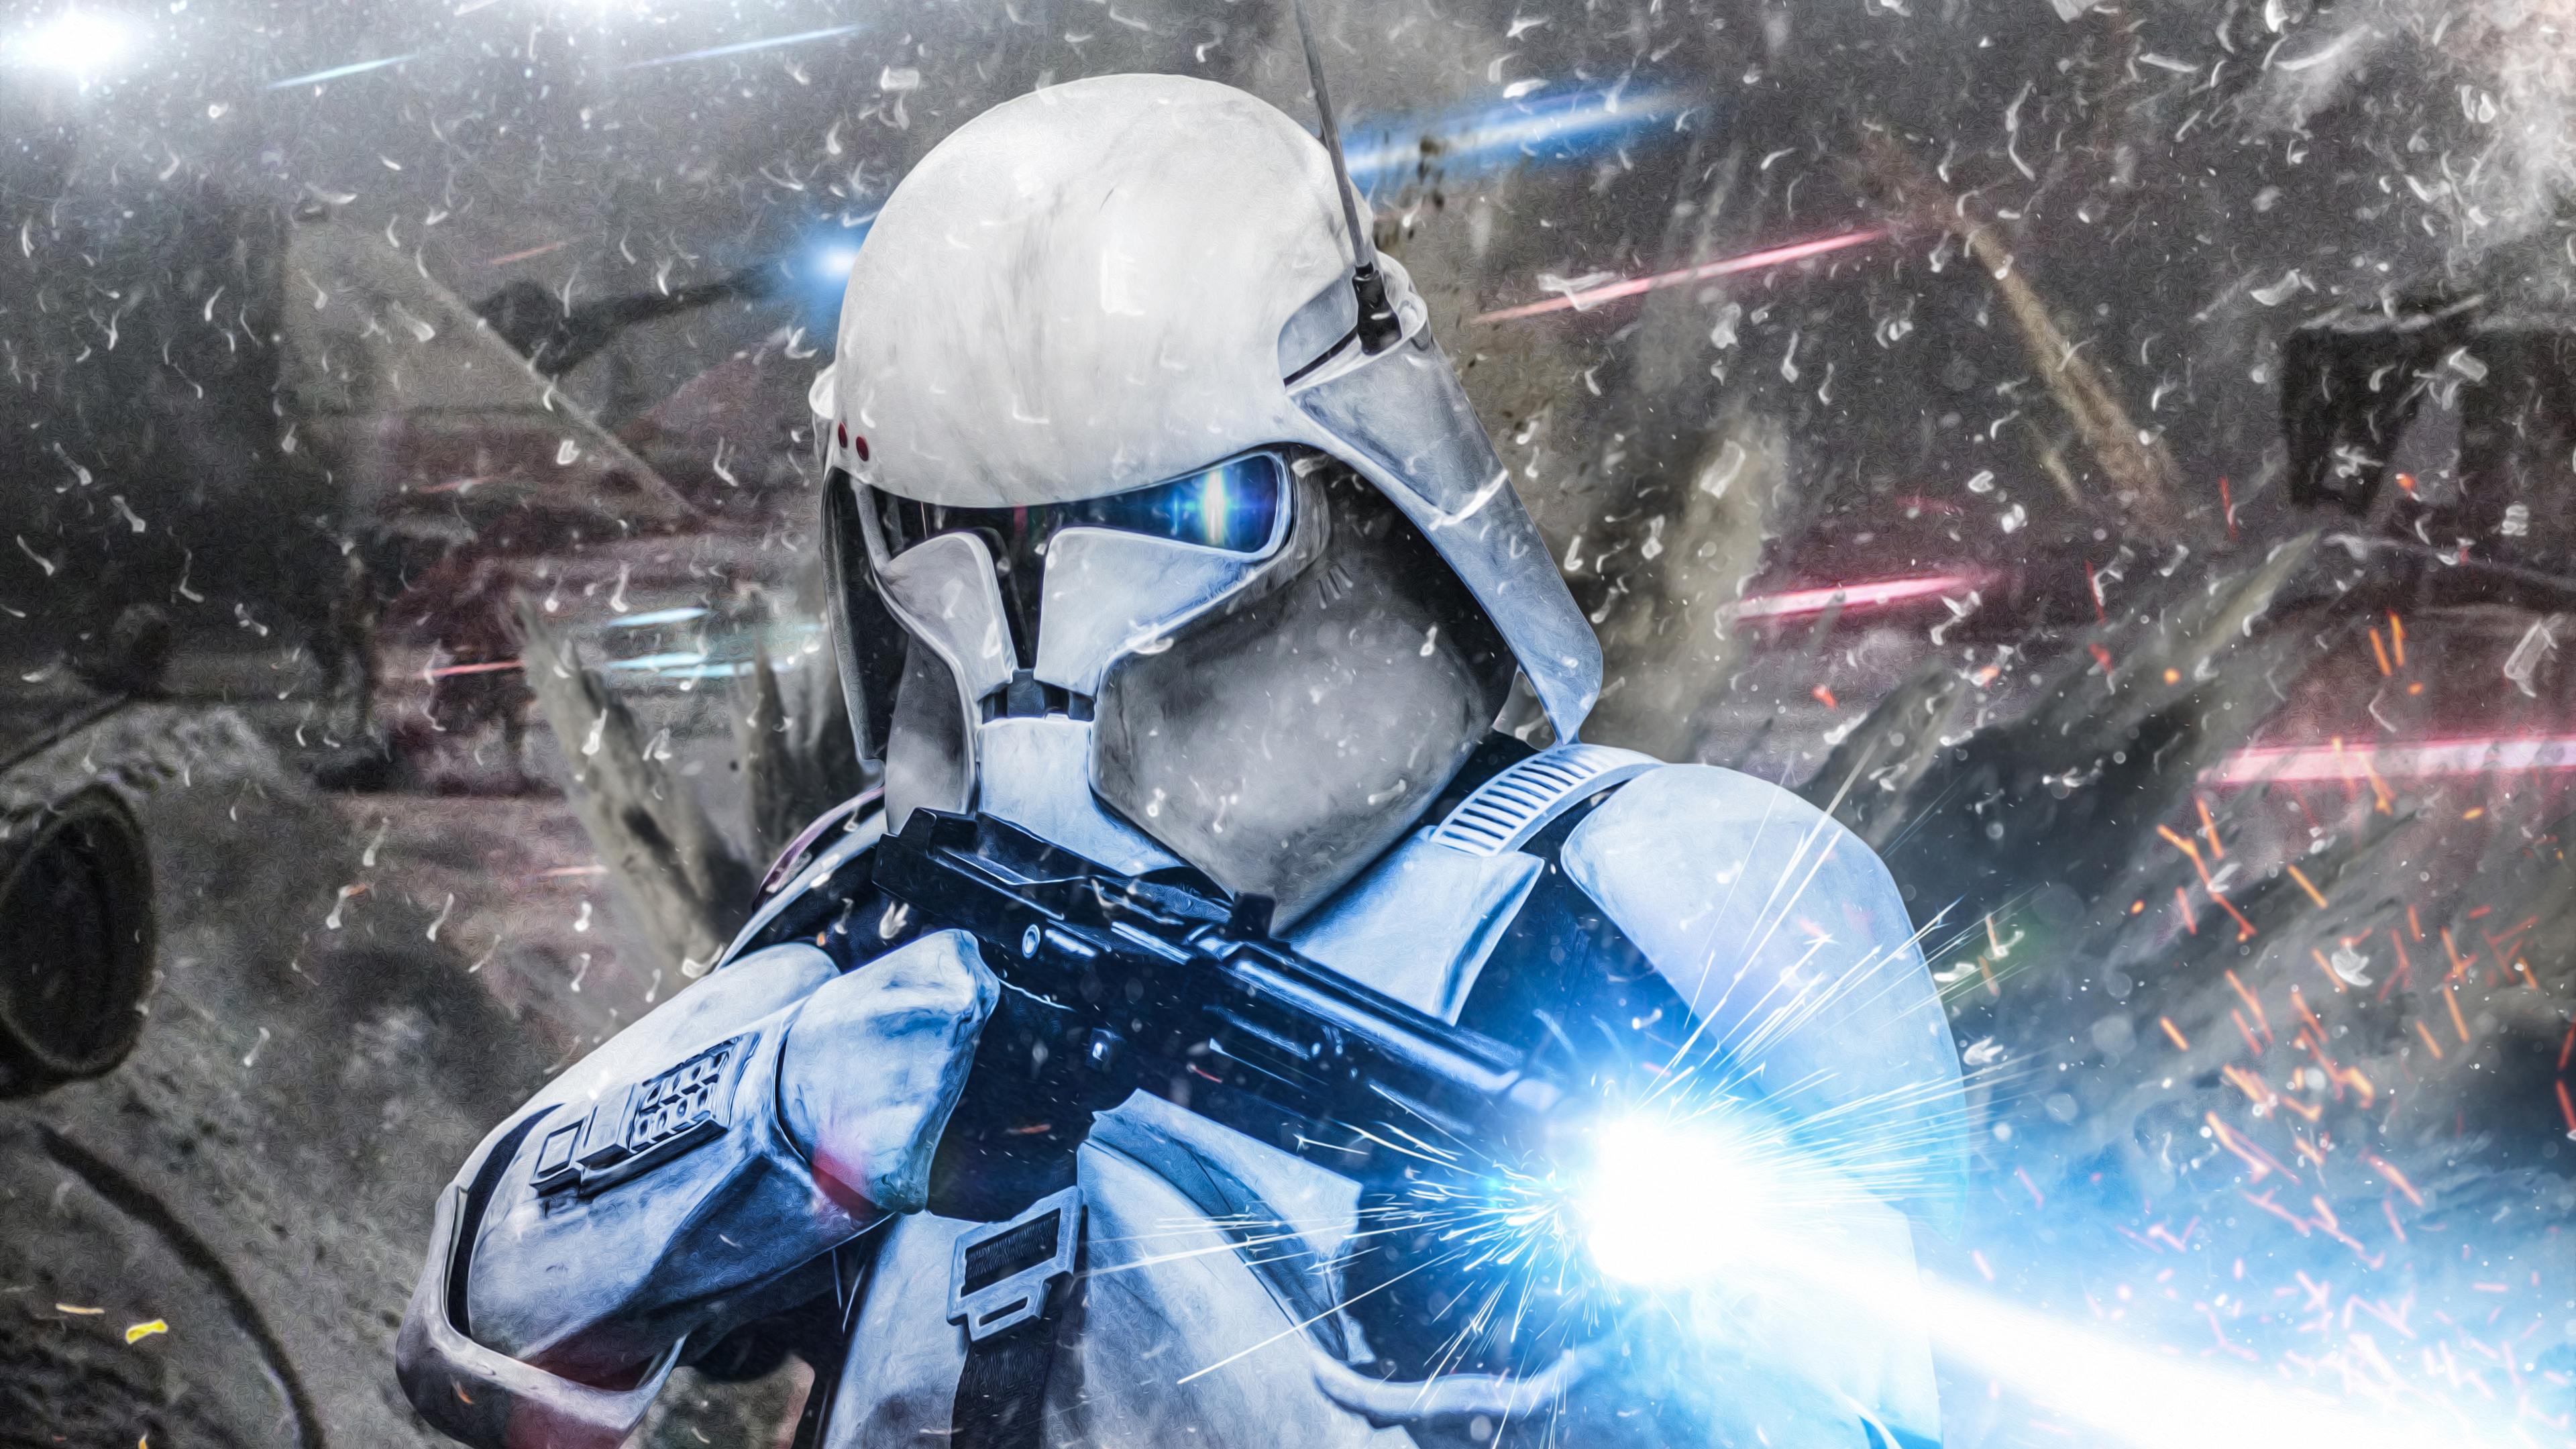 Wallpaper 4k Stormtrooper Commander 4k Wallpapers Deviantart